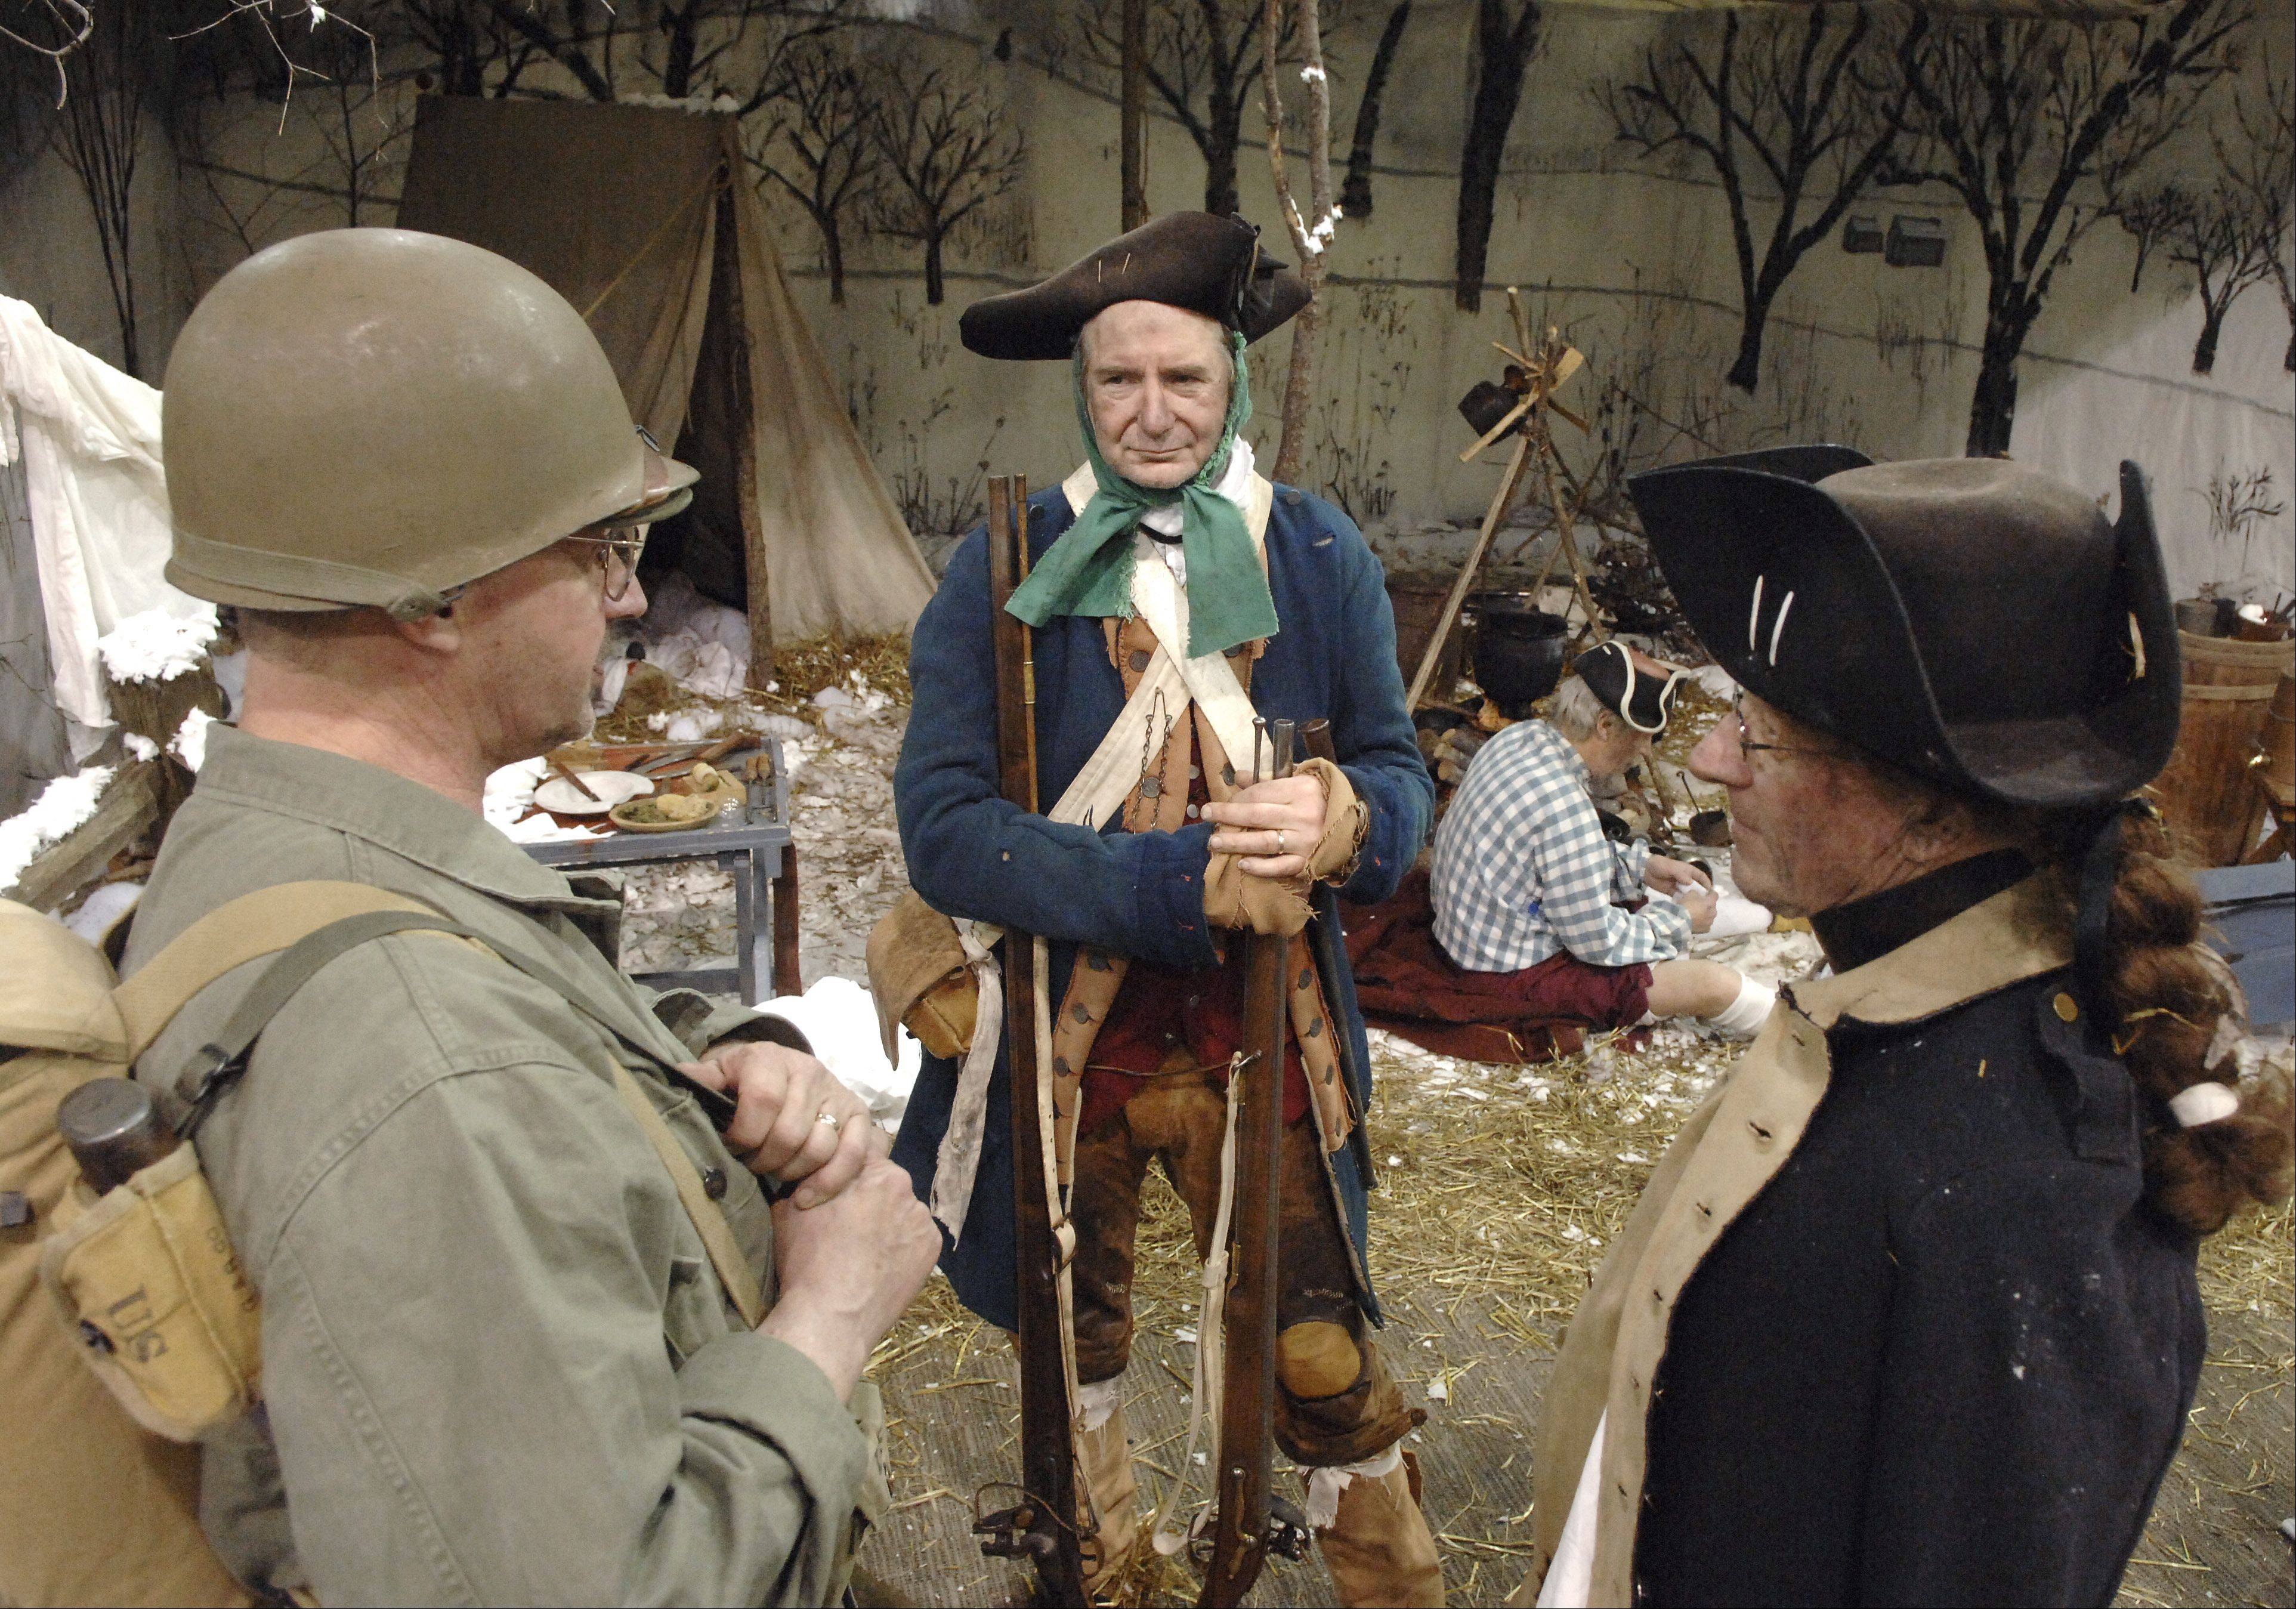 From left, re-enactors John Sauter of Paddock Lake, Wi., Al Potyen of Glen Ellyn and Bill Hess of Janesville, Wi., chat at a Valley Forge scene at last year's Military History Fest at Pheasant Run, St. Charles.